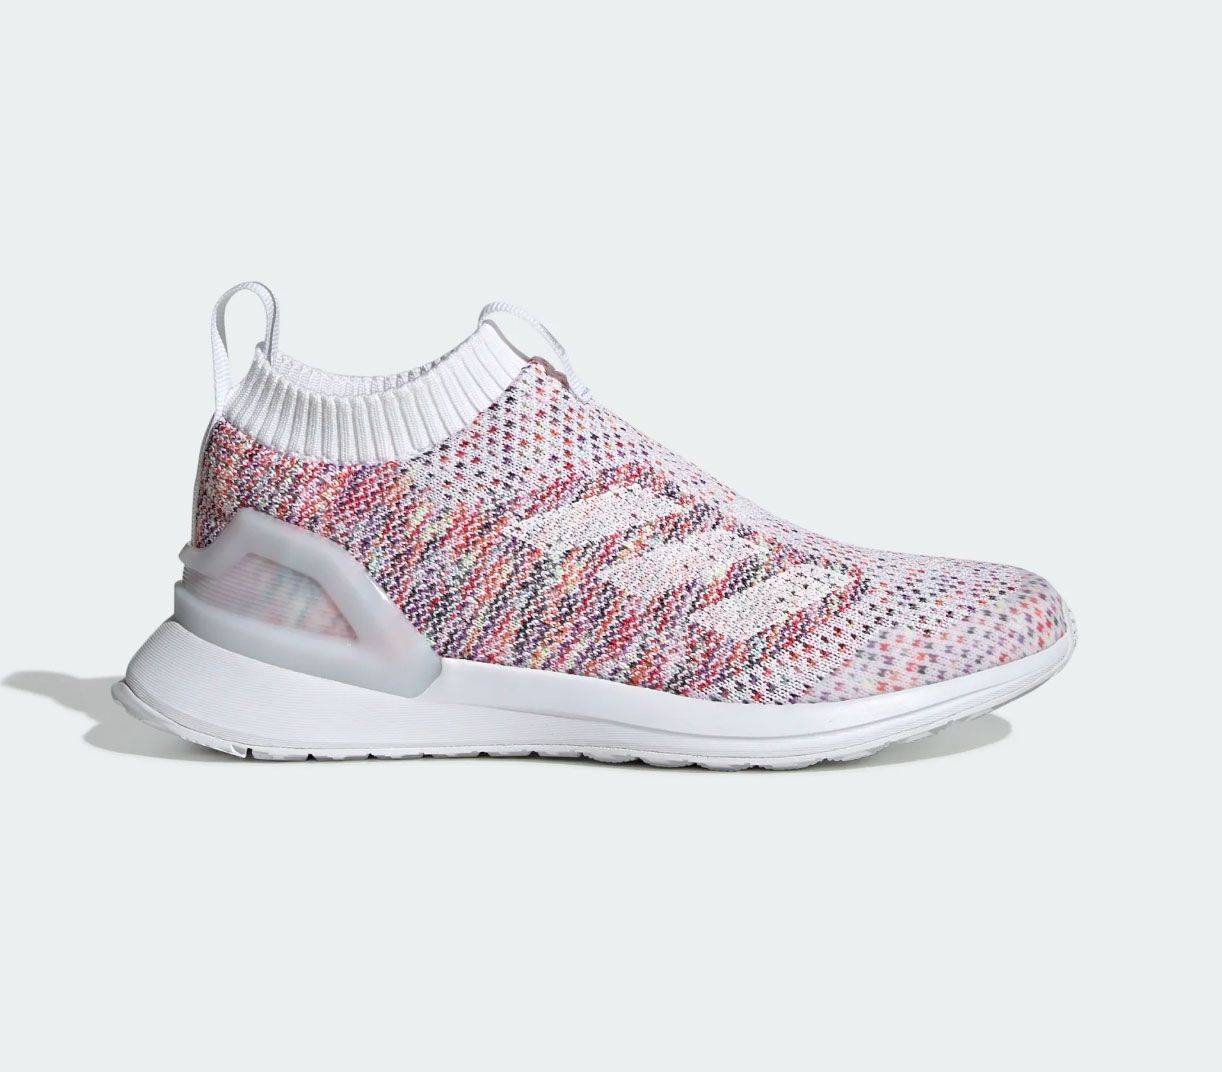 Adidas Shoes for Girls – Girls Running Shoes 2019